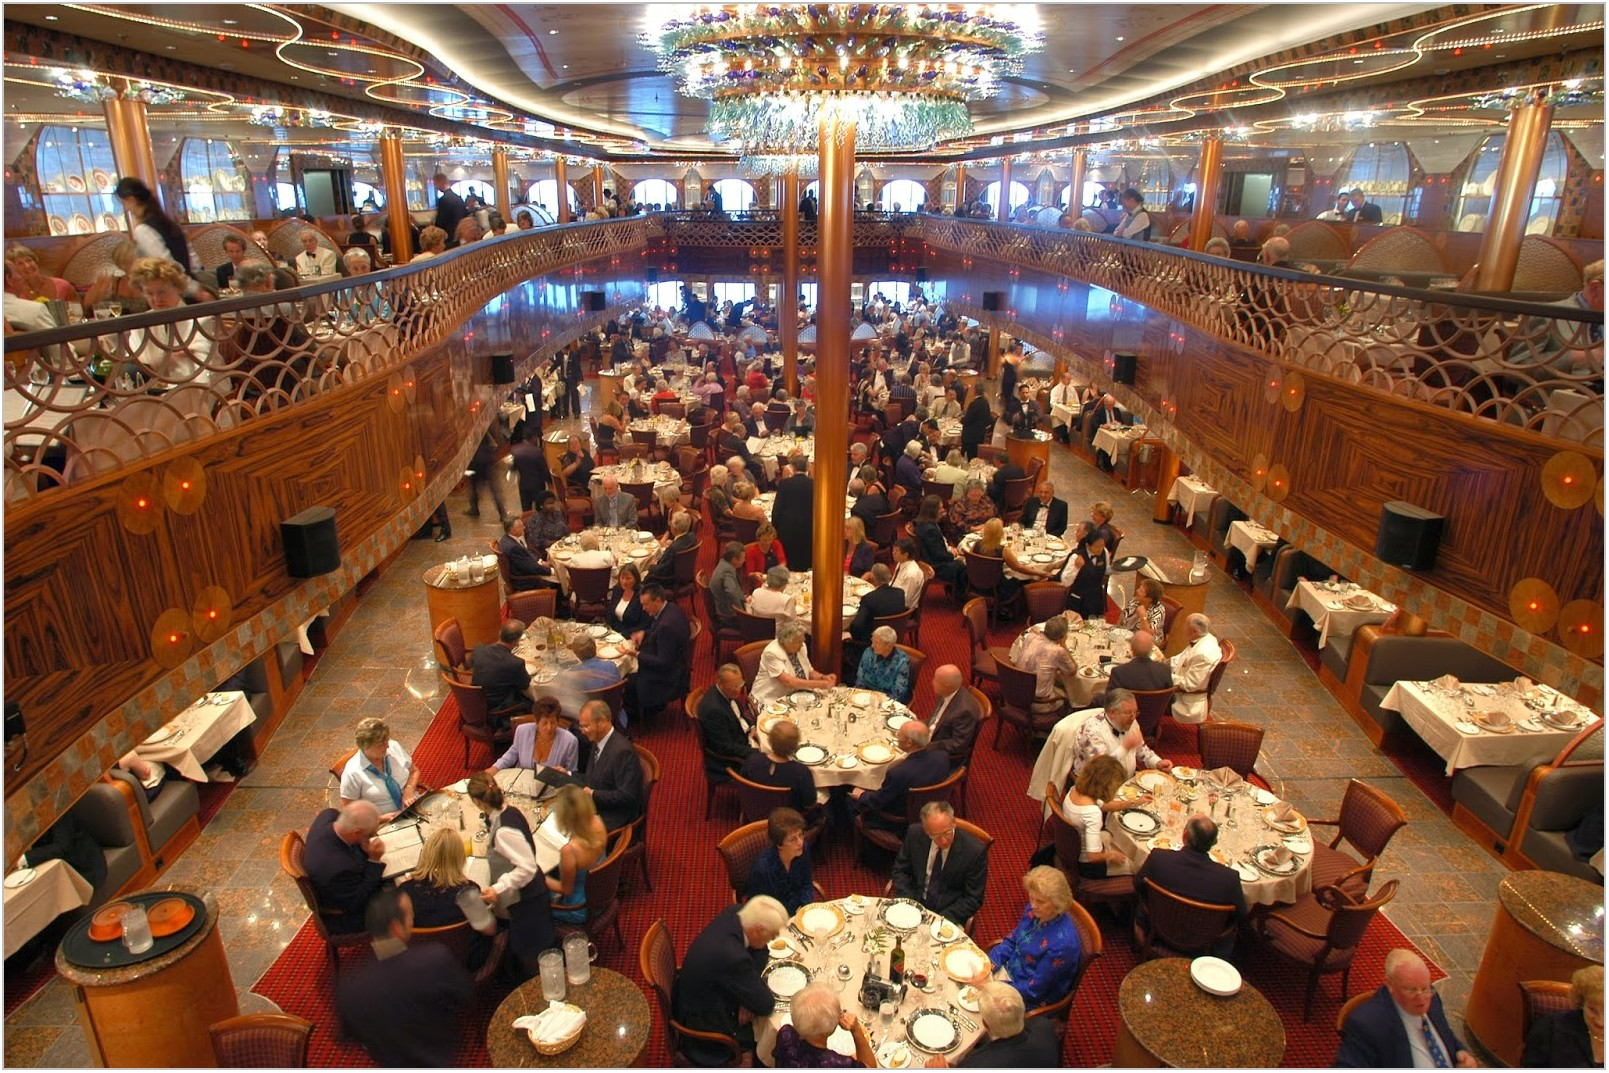 Carnival Cruise Dining Room Dress Code